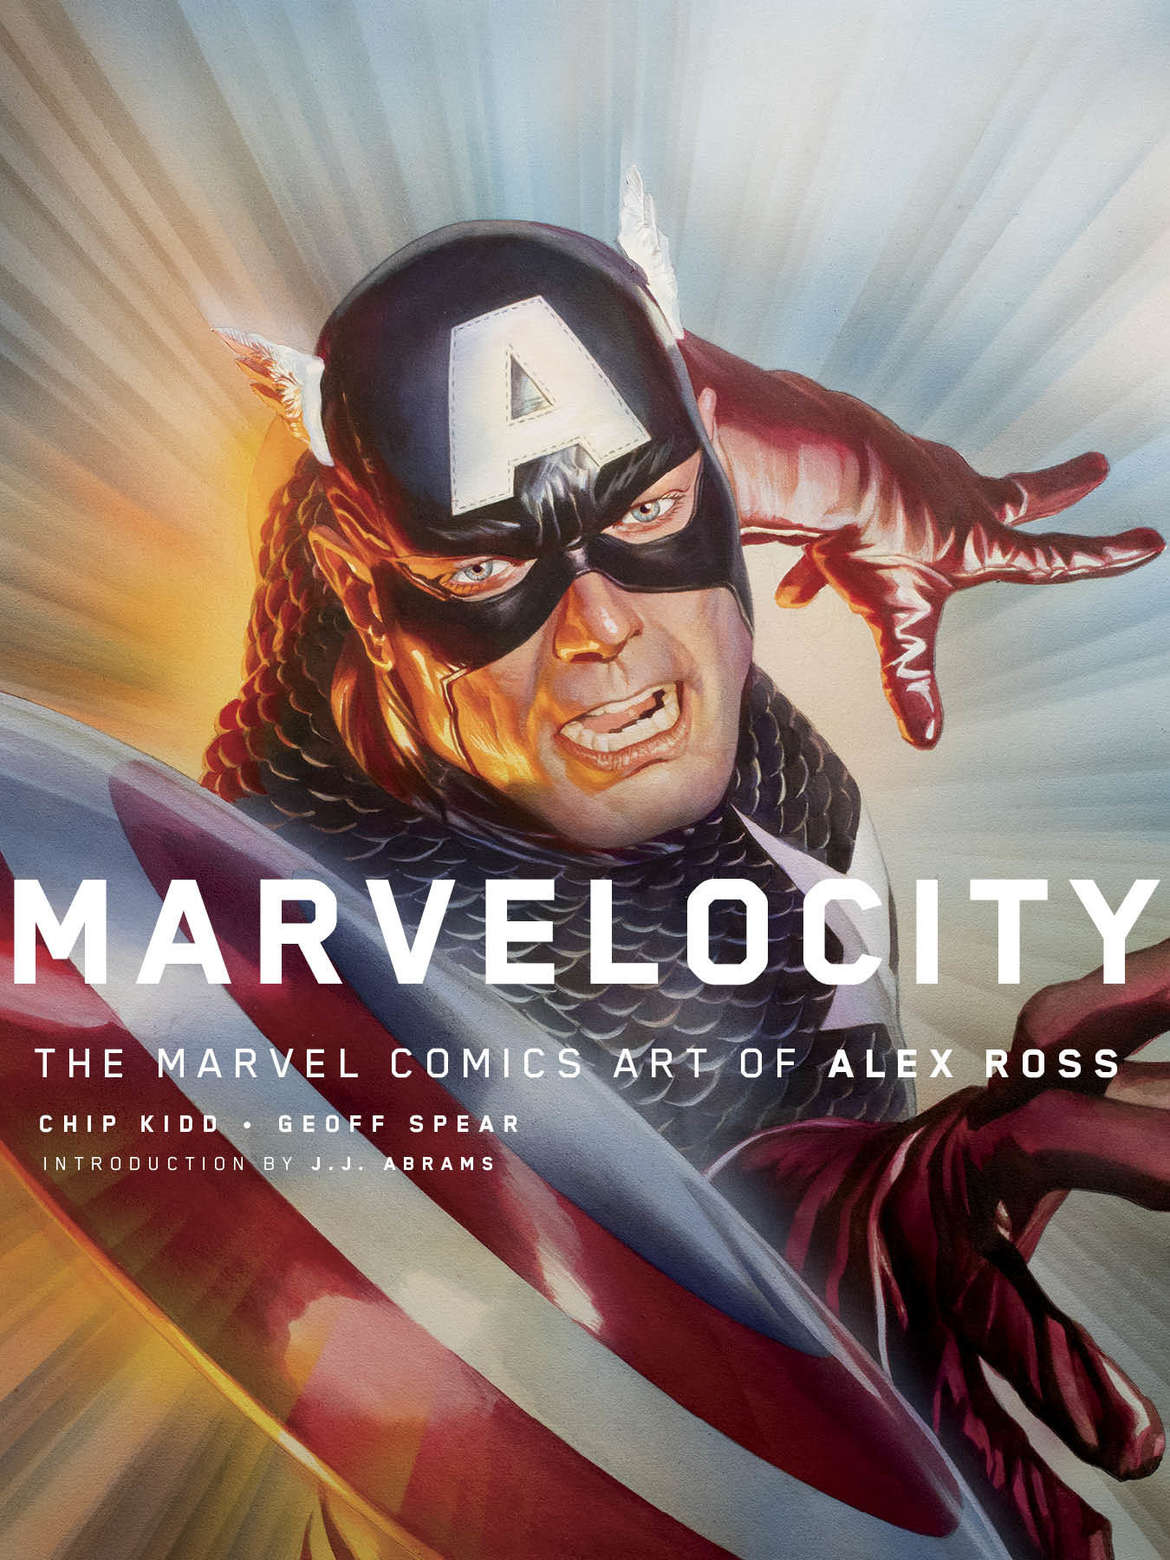 Marvelocity Cover - Final by Alex Ross